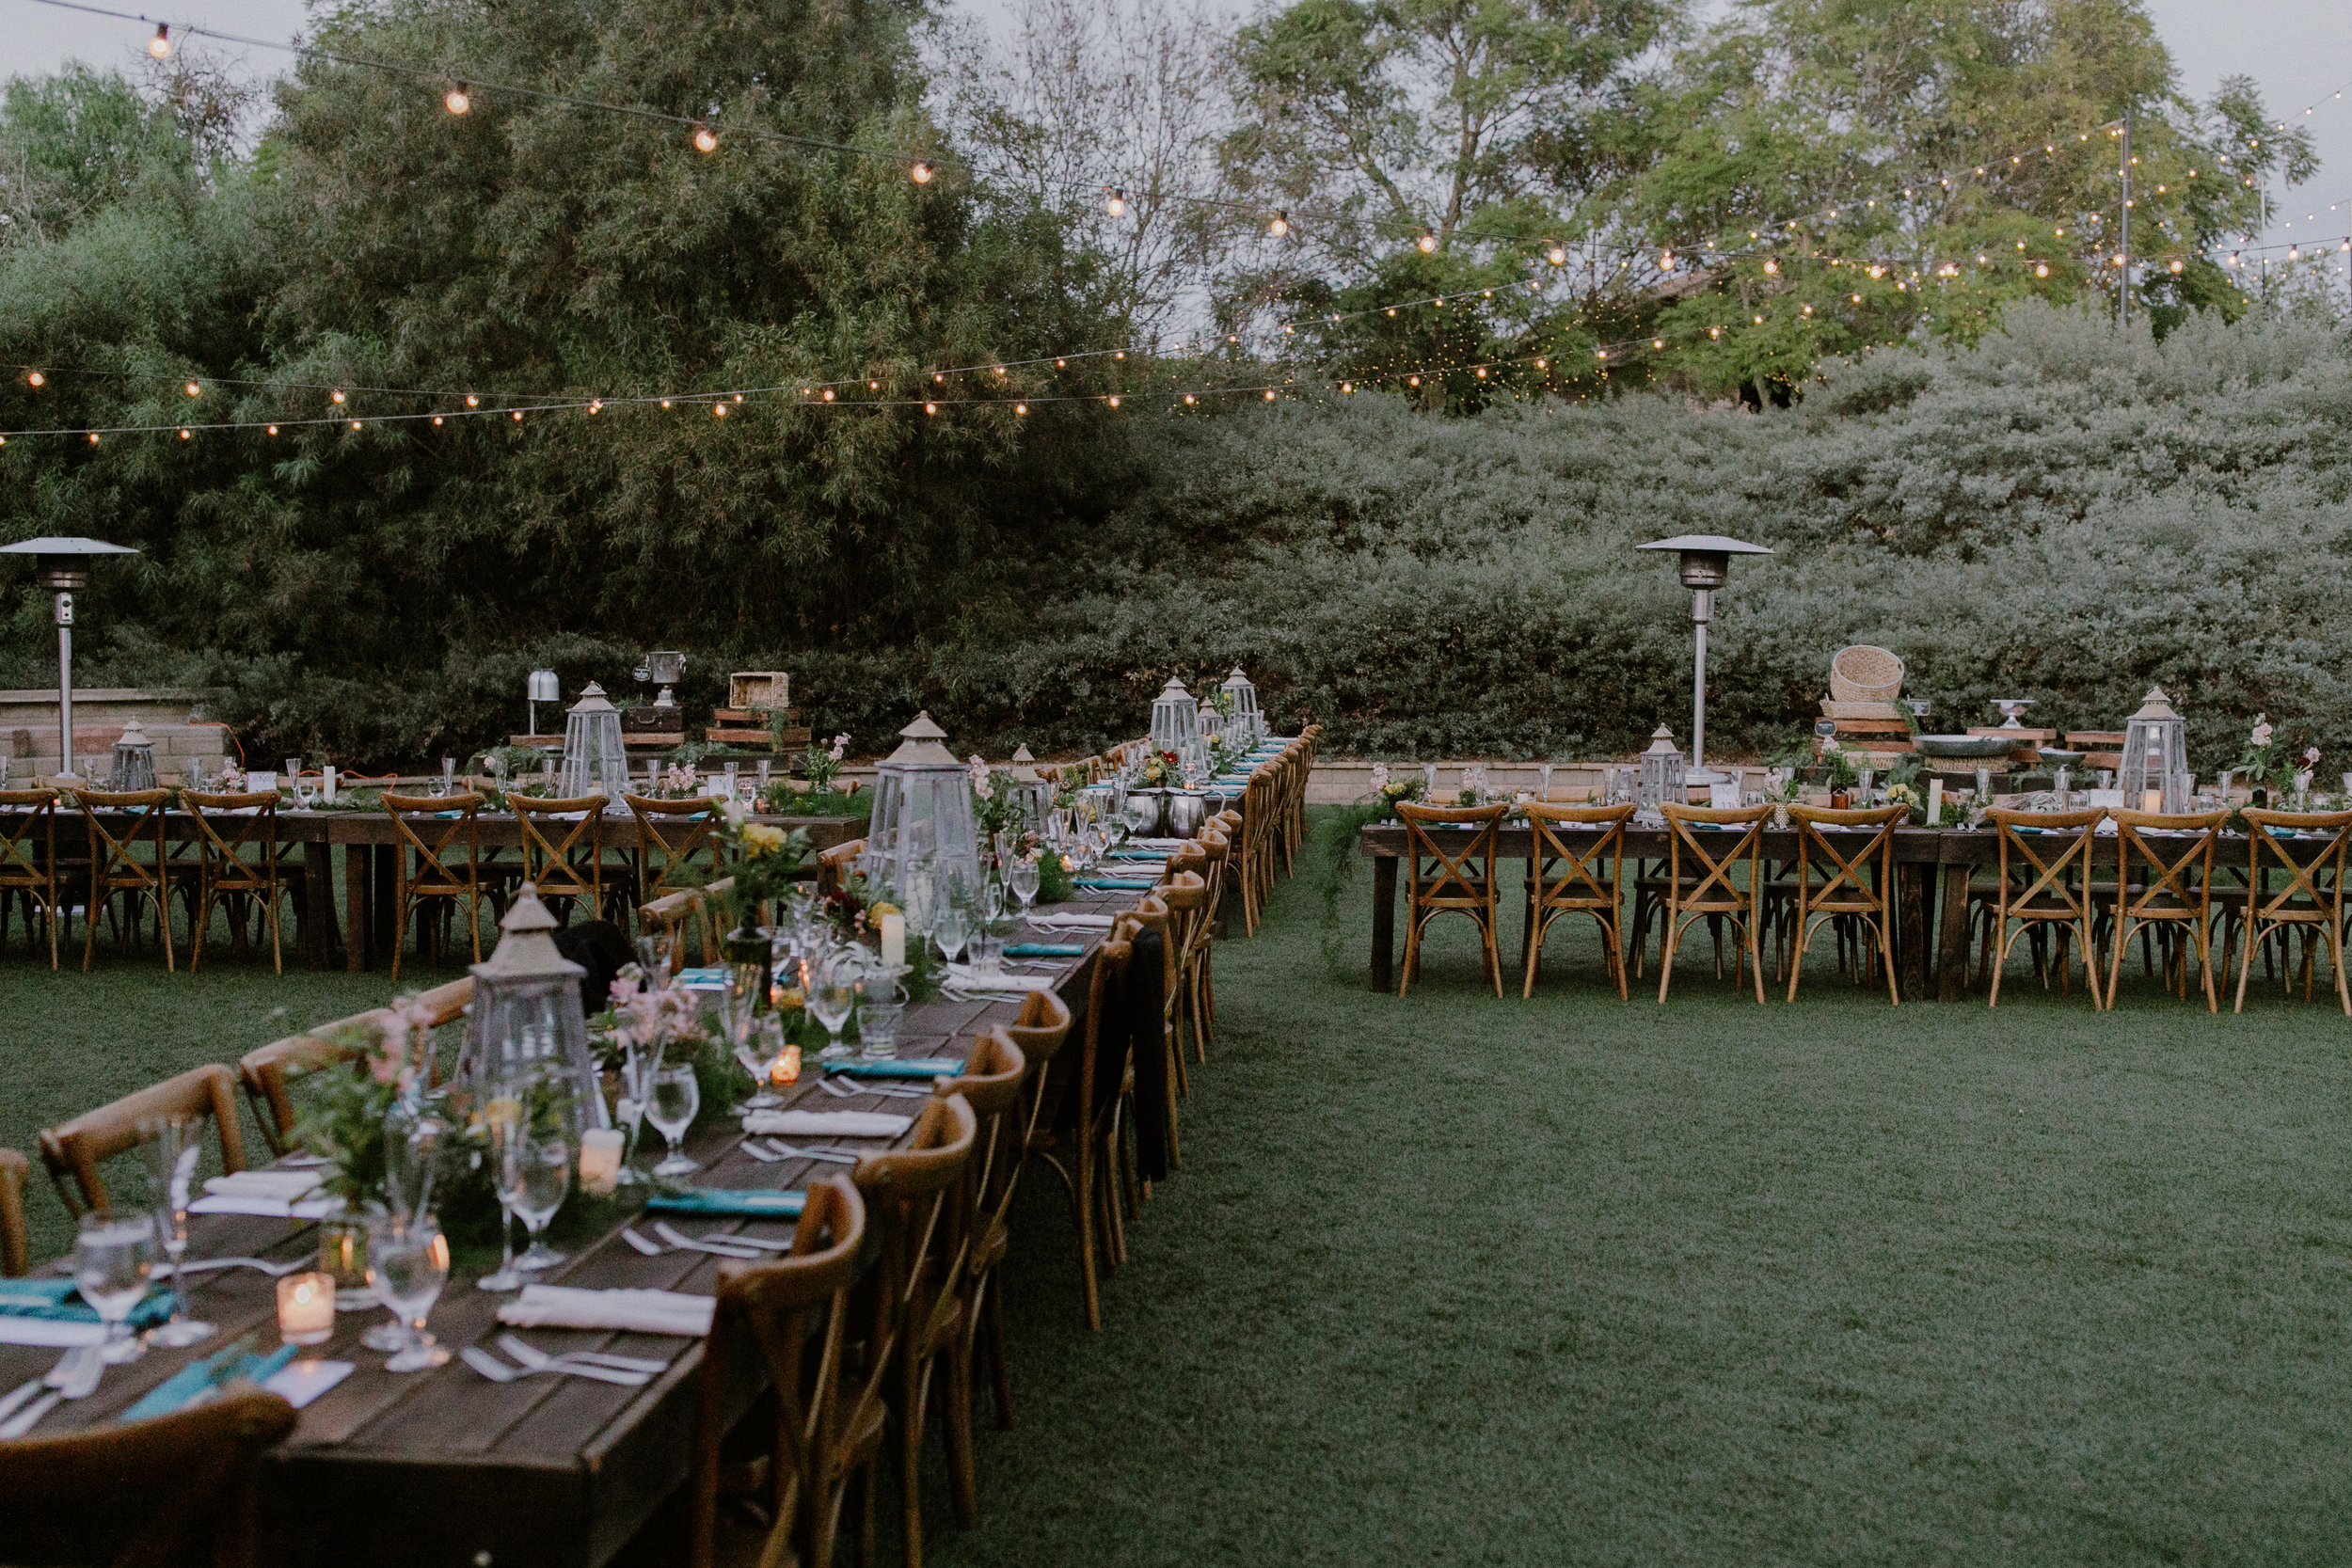 """Our venue provided EXACTLY what I wanted in terms of surroundings, outdoor/indoor options, tables & chairs, lighting, and a neat double """"X"""" configuration so every guest had a good seat."""